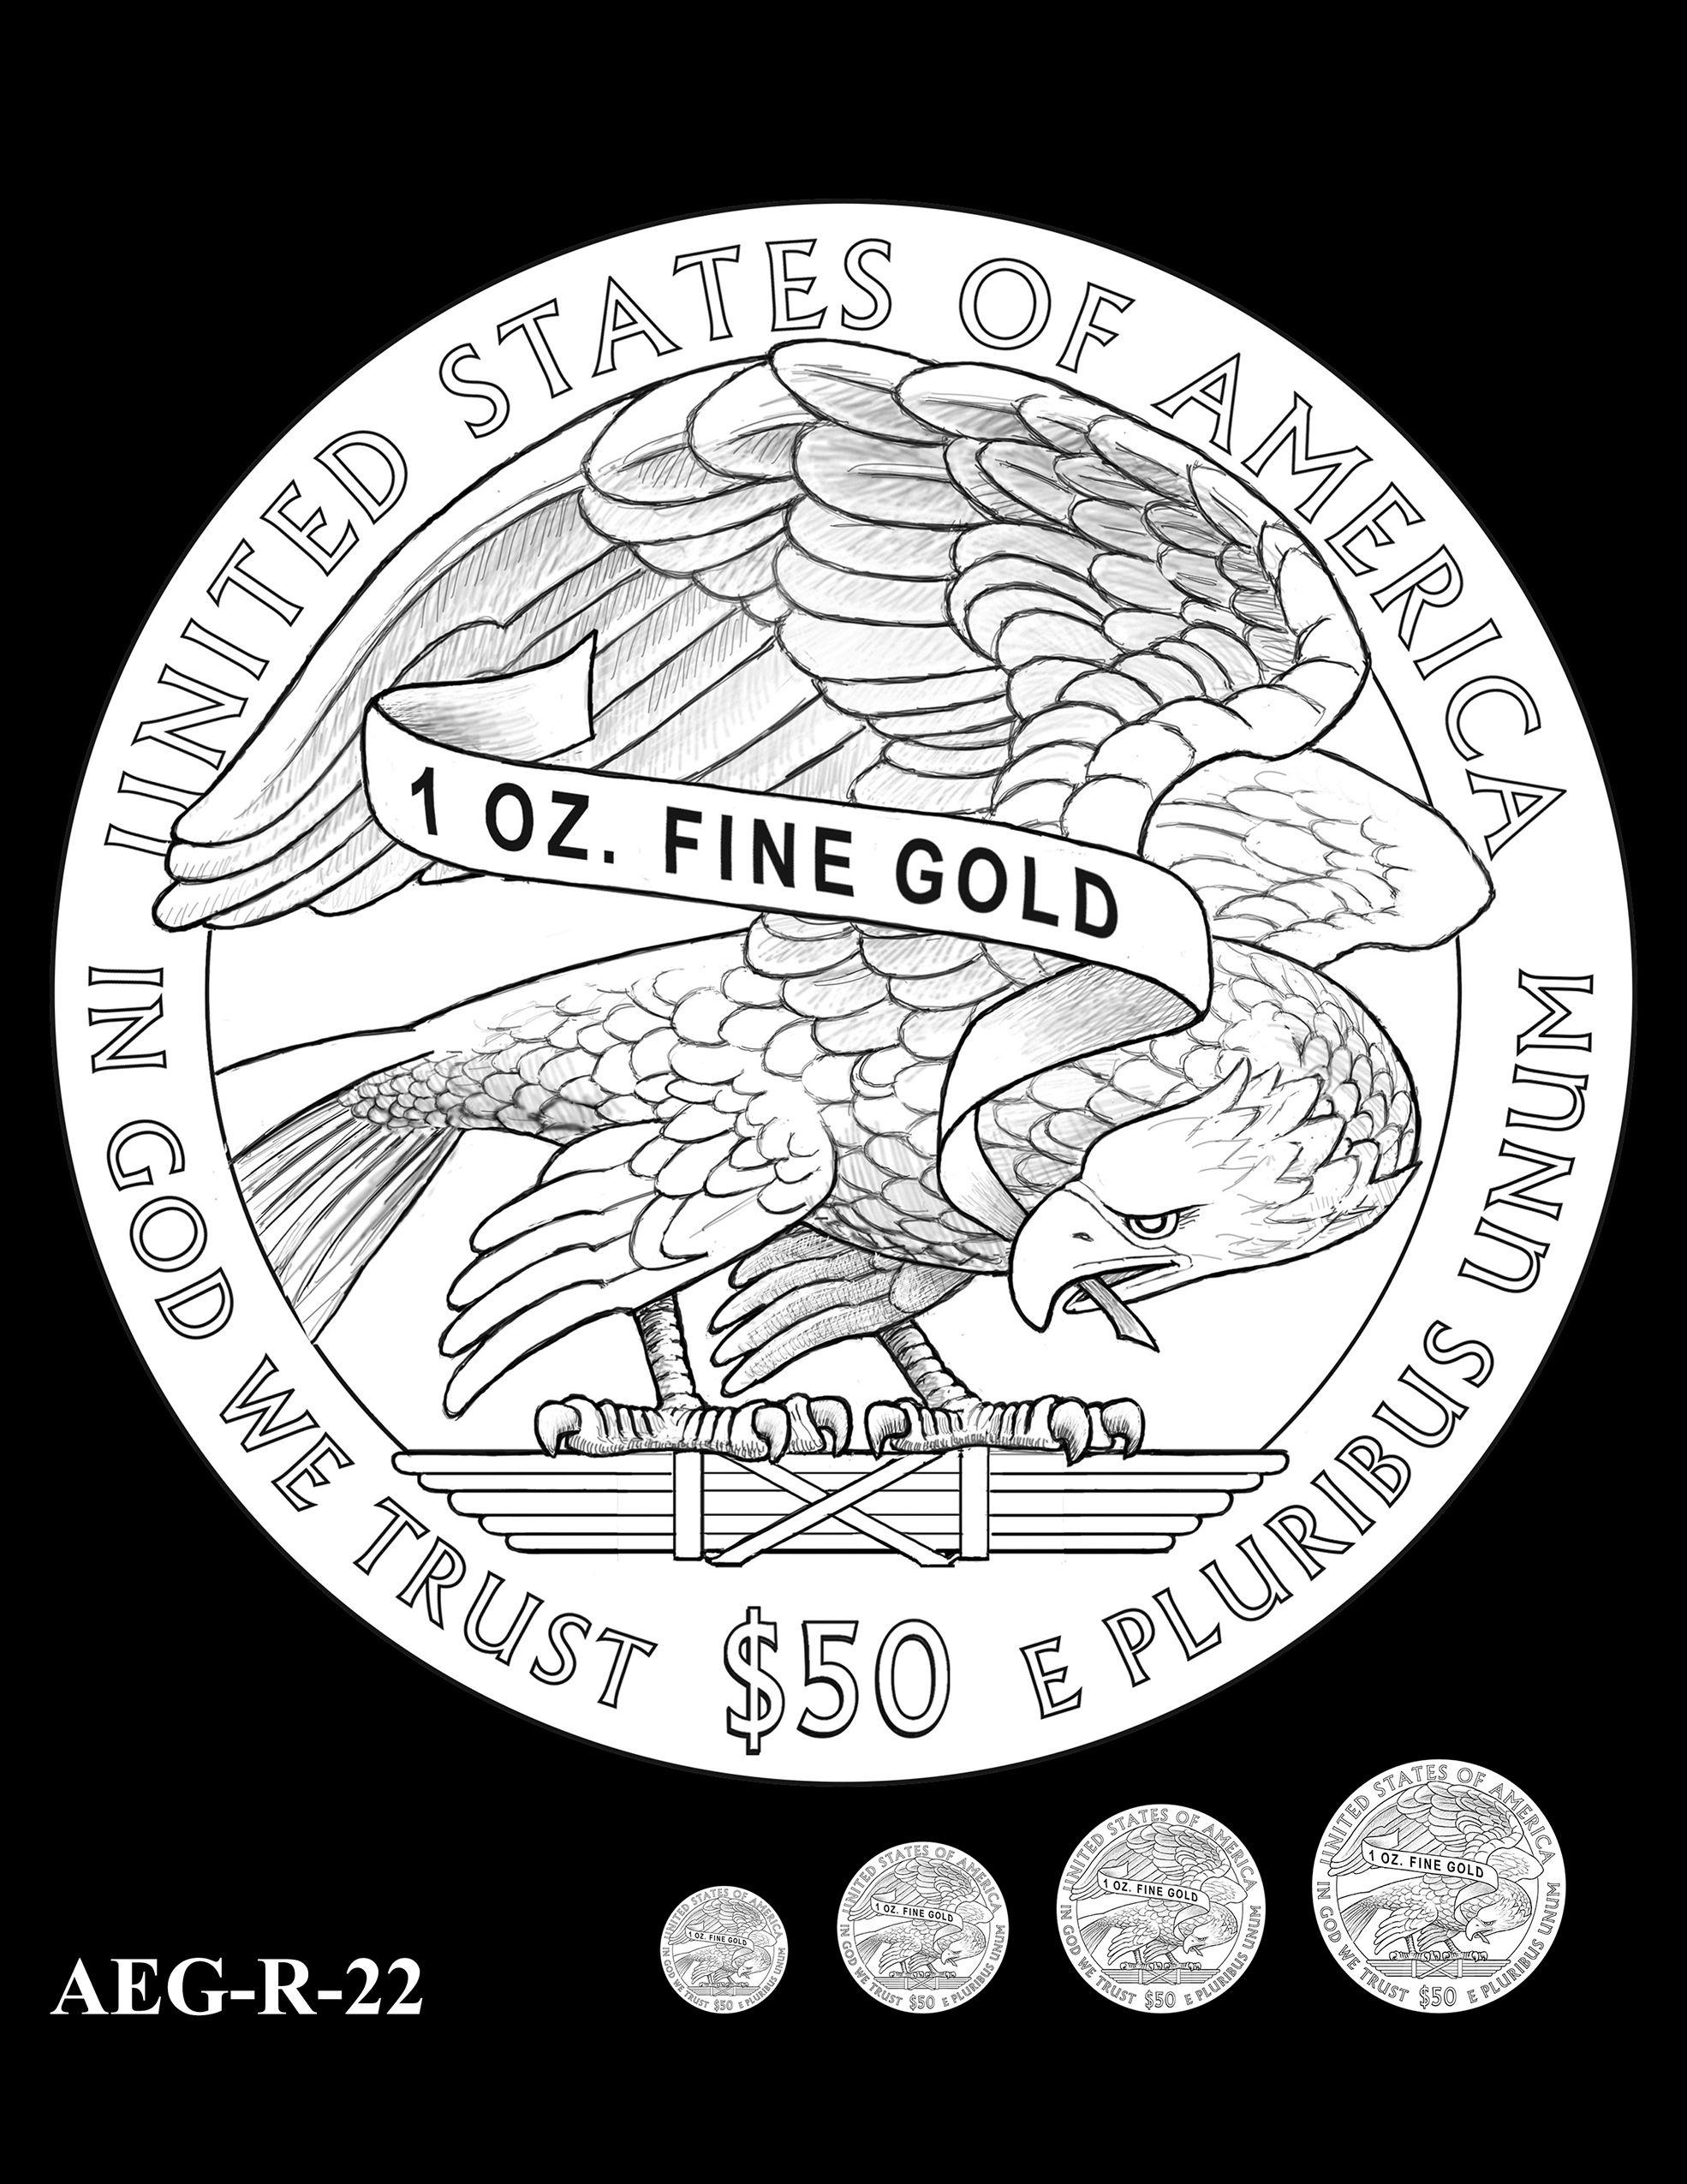 AEG-R-22 -- American Eagle Proof and Bullion Gold Coin - Reverse